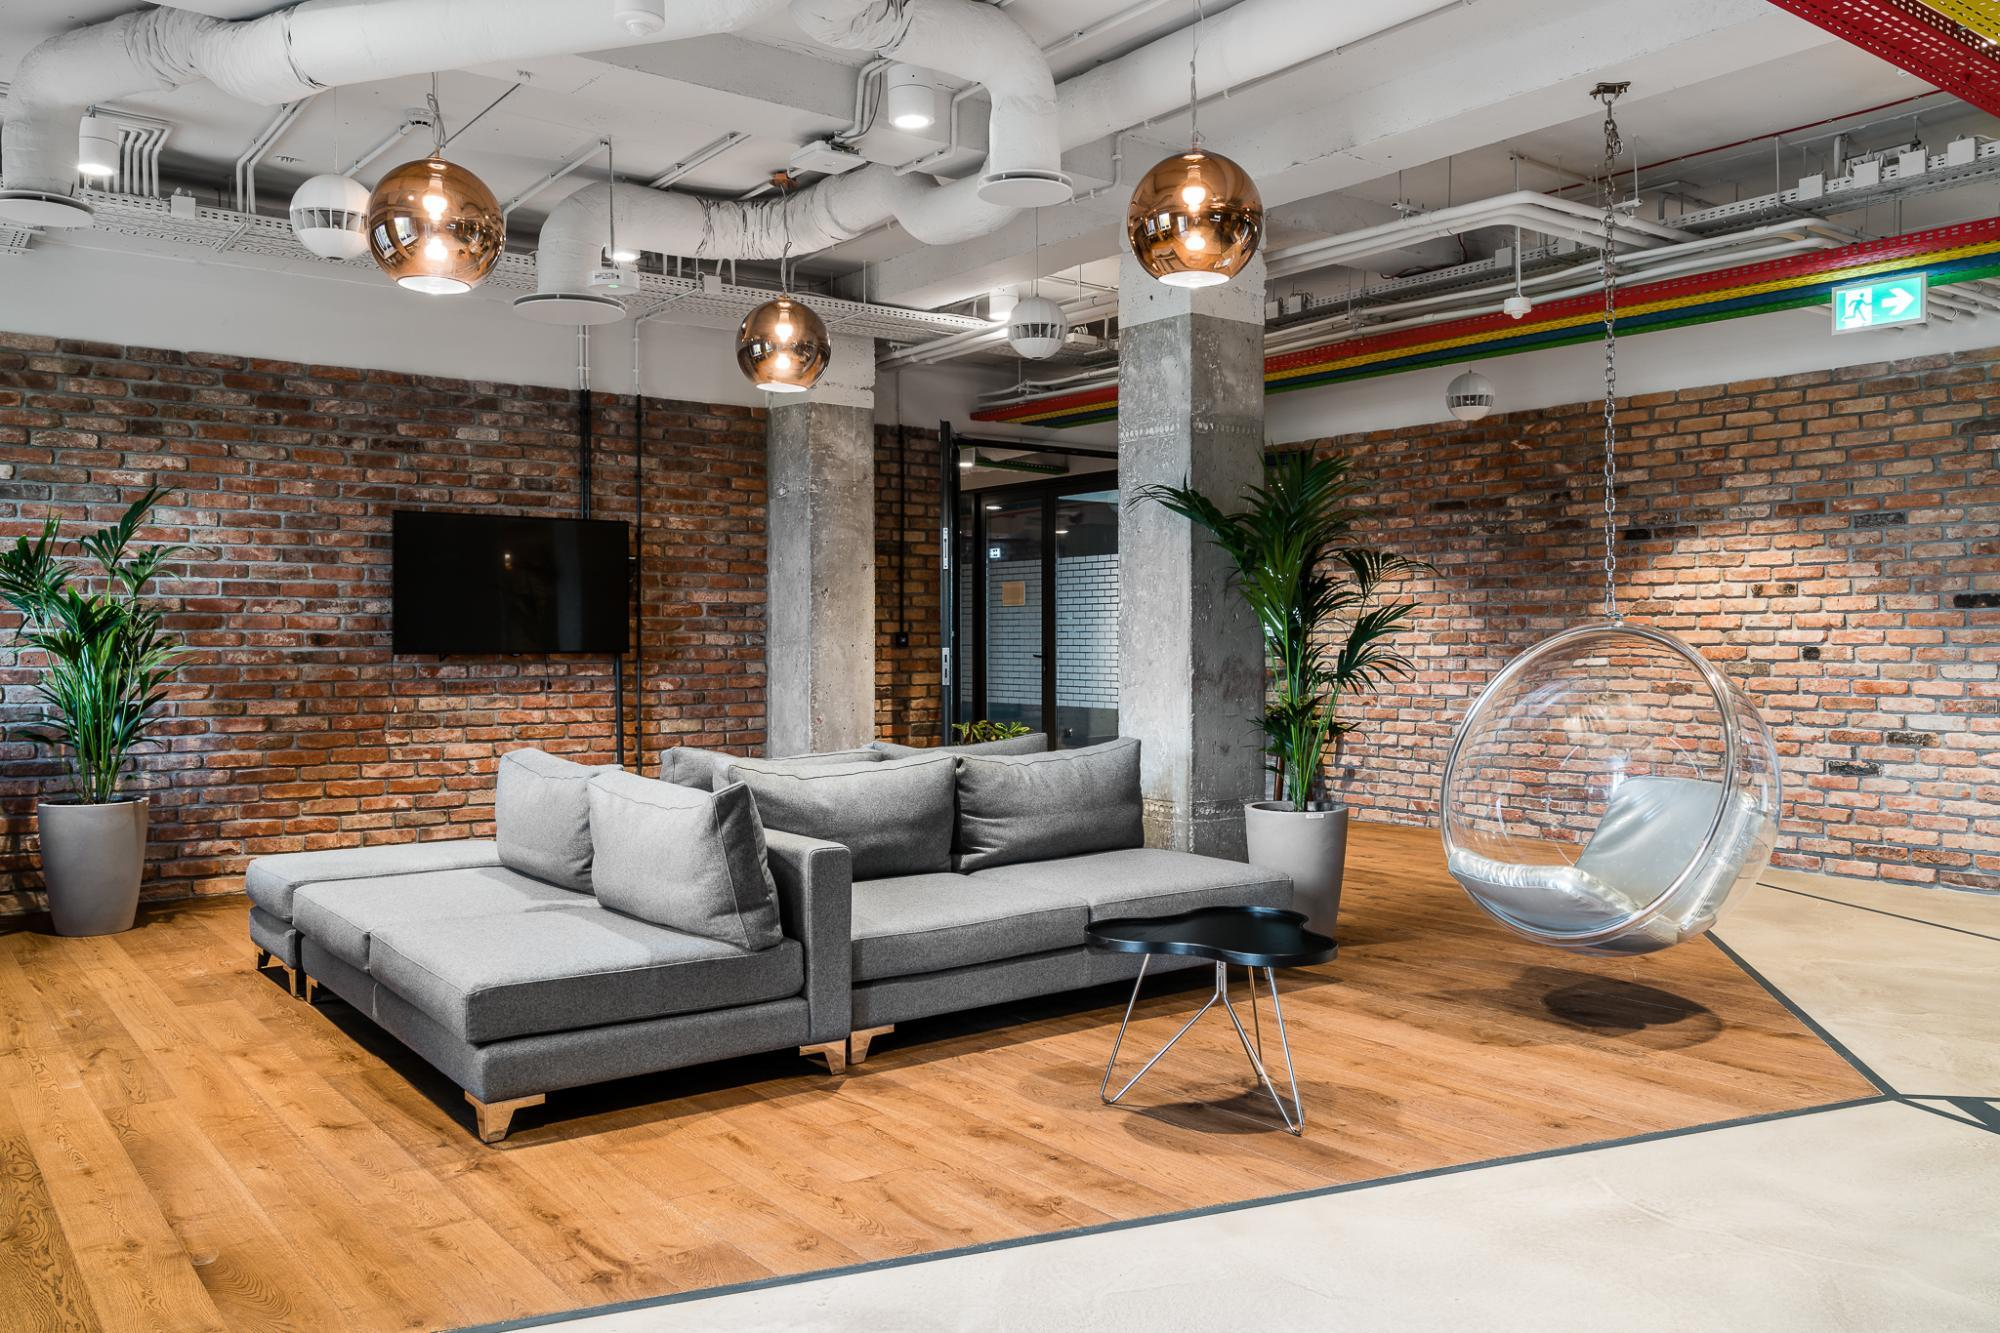 BeYOURSeLF BIT - Coworking Space - Warsaw